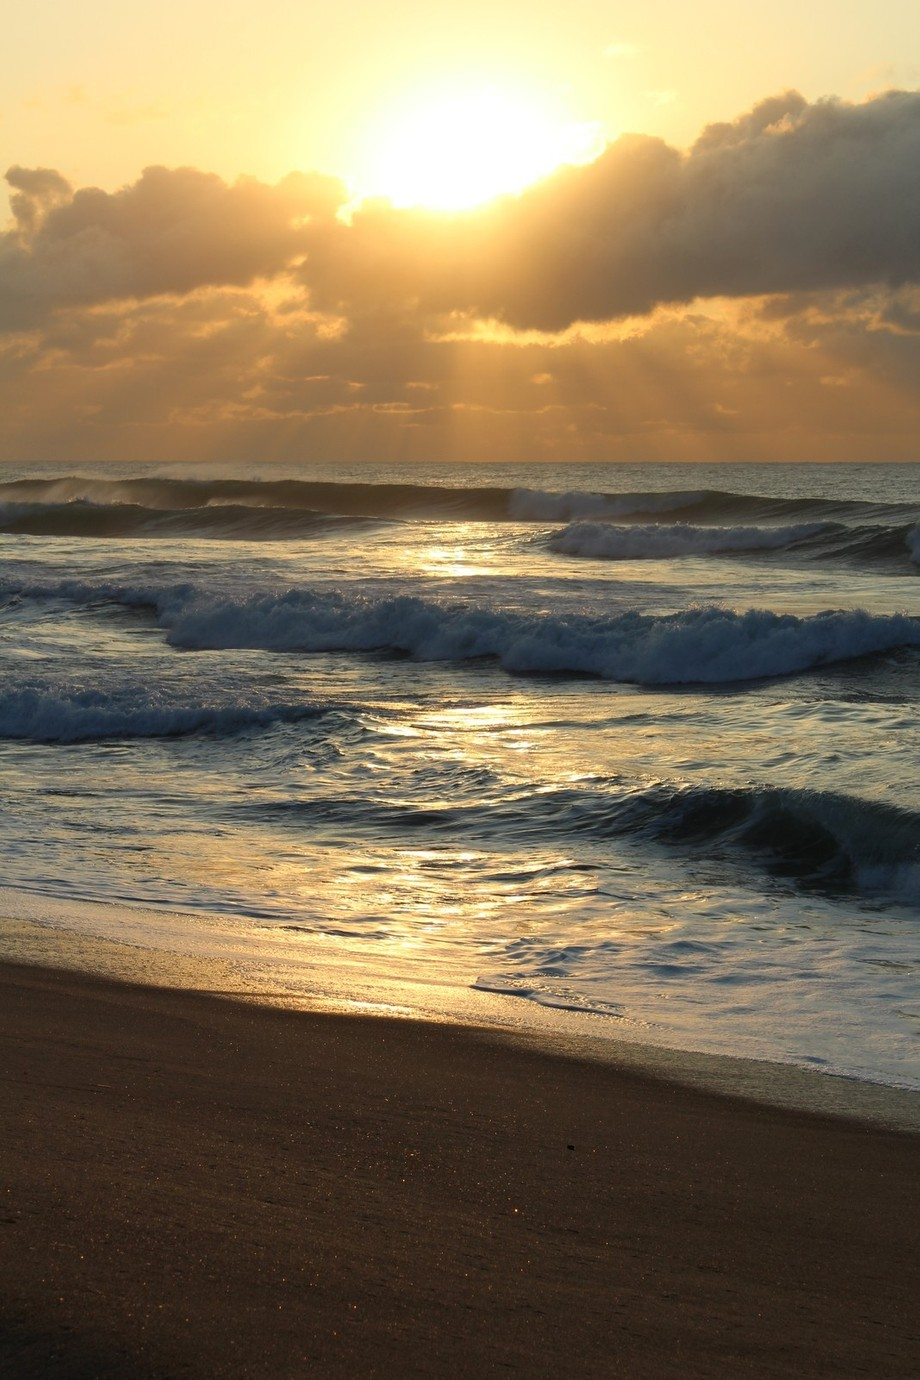 Early morning at Amanzimtoti Beach, South Africa shooting the sunrise.